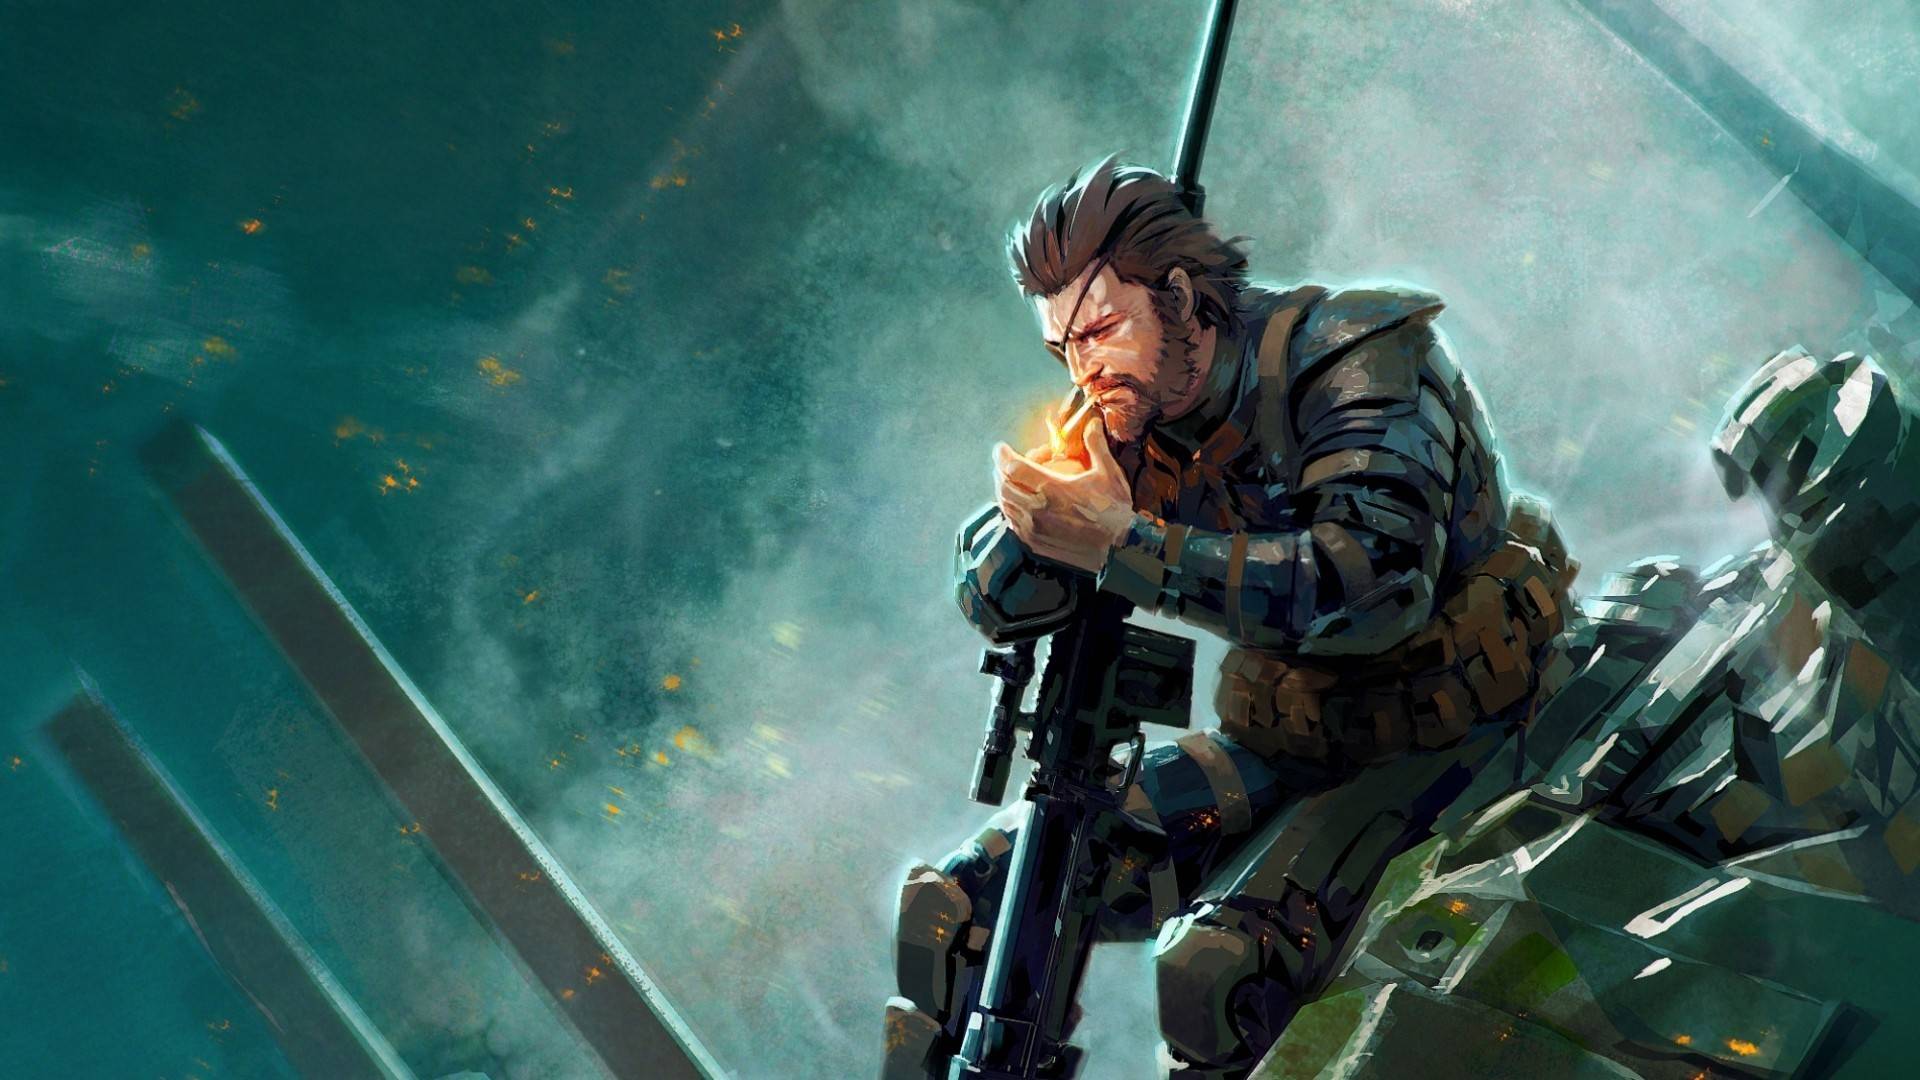 Res: 1920x1080, Metal Gear Solid V: The Phantom Pain Wallpapers HD / Desktop and Mobile  Backgrounds